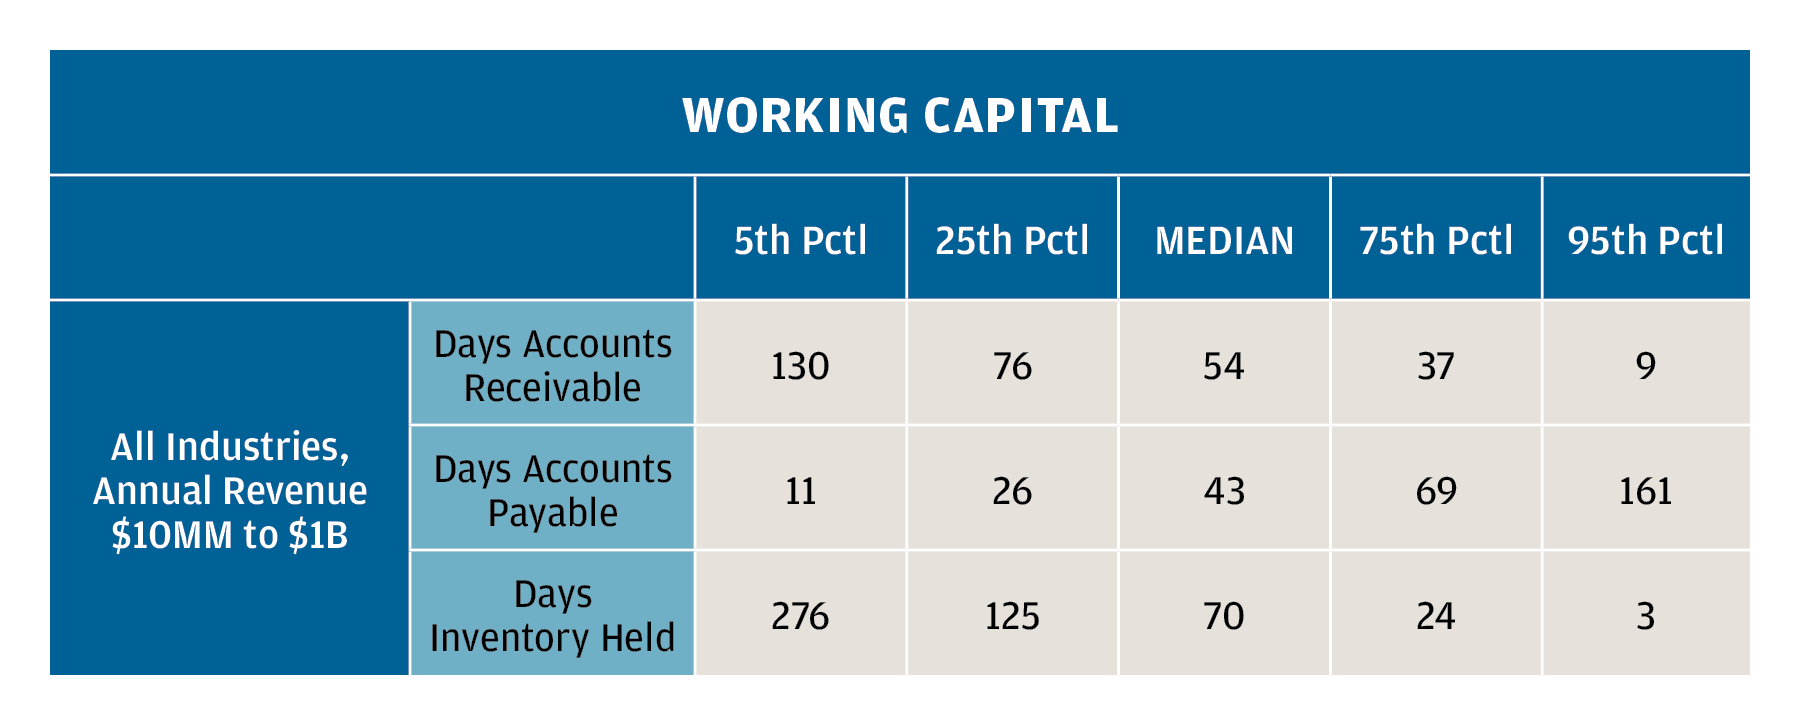 The table indicates that the top 5% of companies (95th percentile) collect their receivables in about 9 days, while the companies in the bottom 25% can take nearly three months to collect. The median time to collect is 54 days, or about two months; but companies in the 75th percentile collect their cash 17 days quicker.